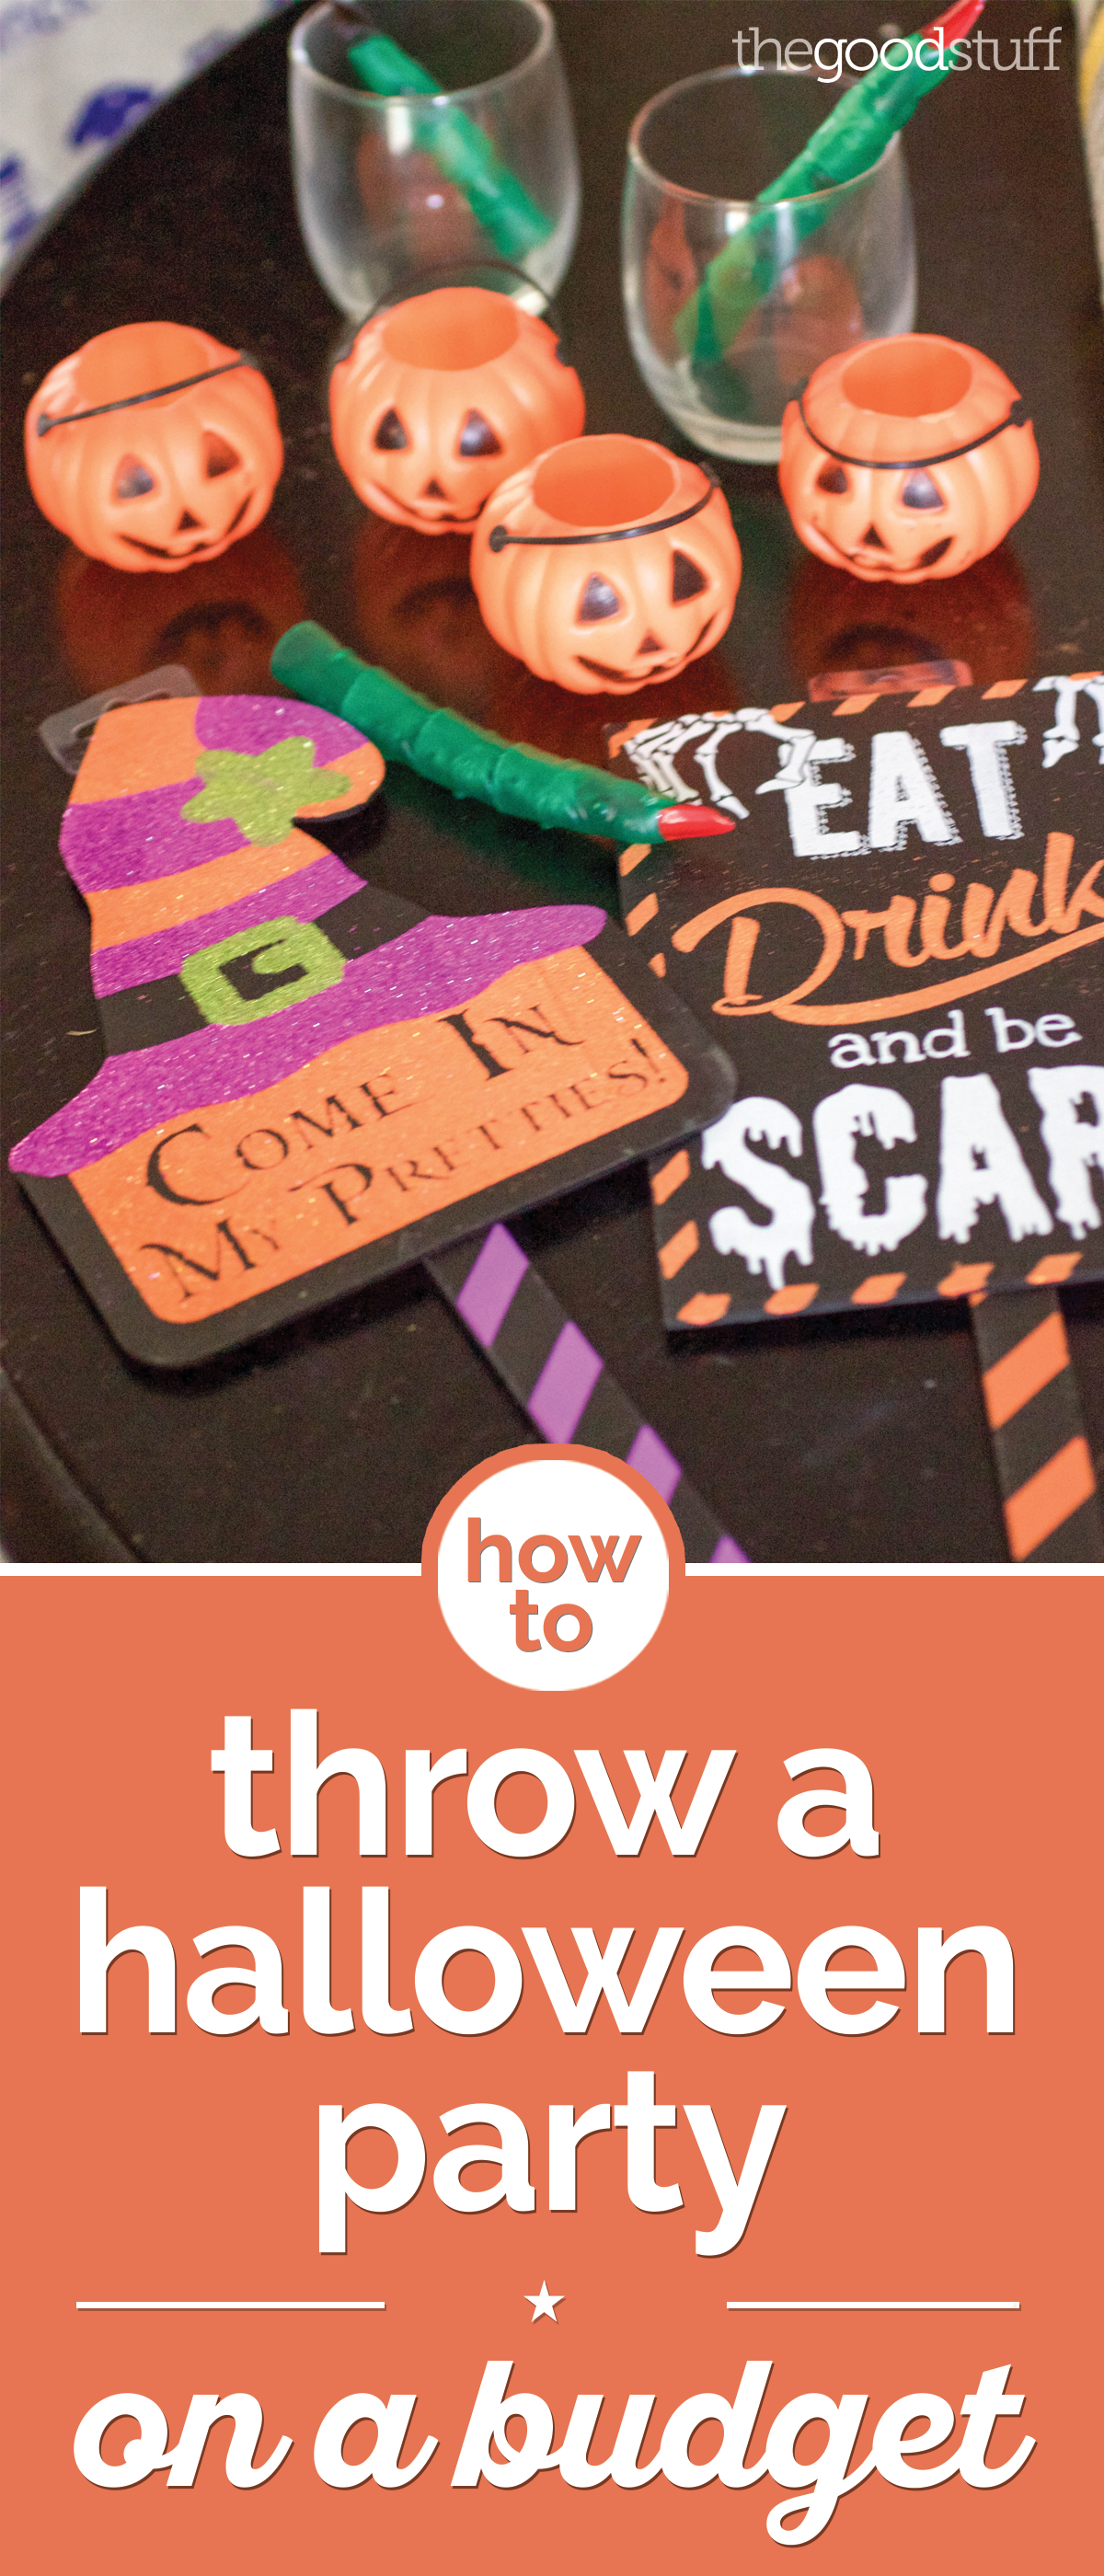 How to throw a halloween party on a budget thegoodstuff for How to have a great halloween party